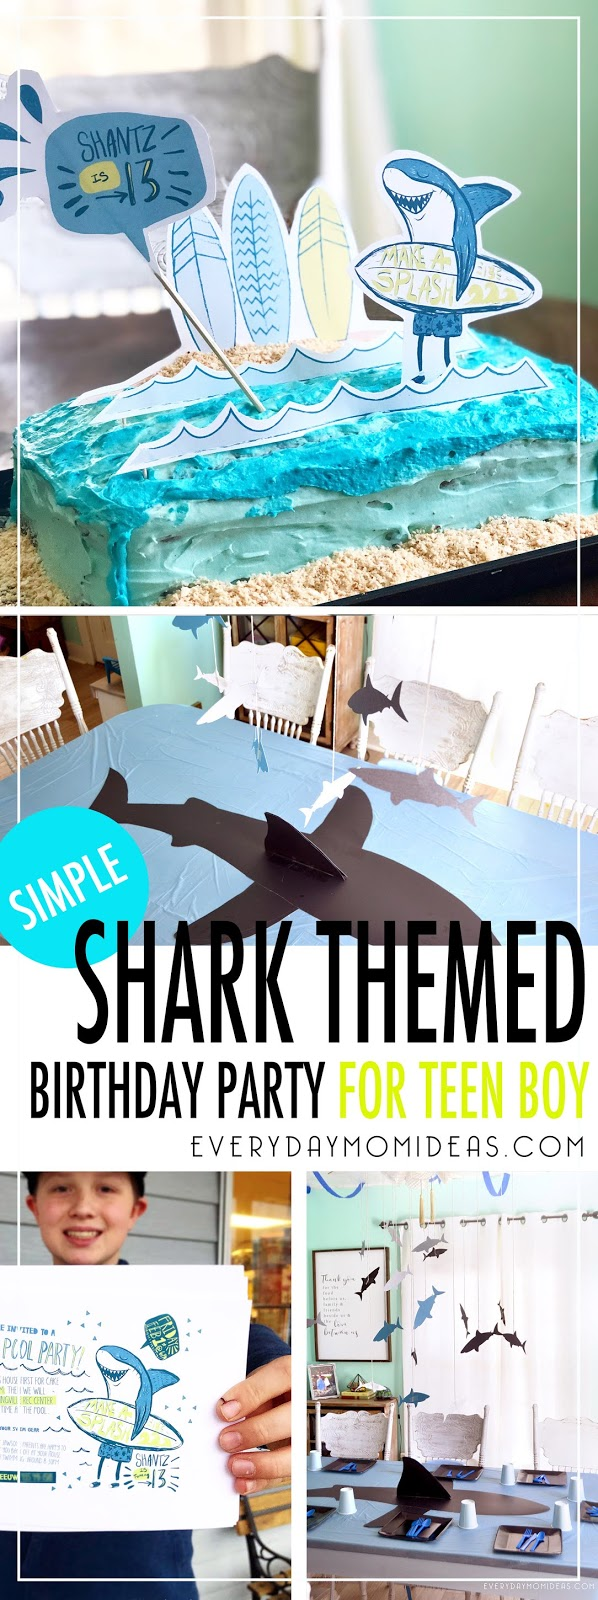 Teen Boy Surfer Shark Birthday Party (Simple Birthday Ideas With FREE Printables)